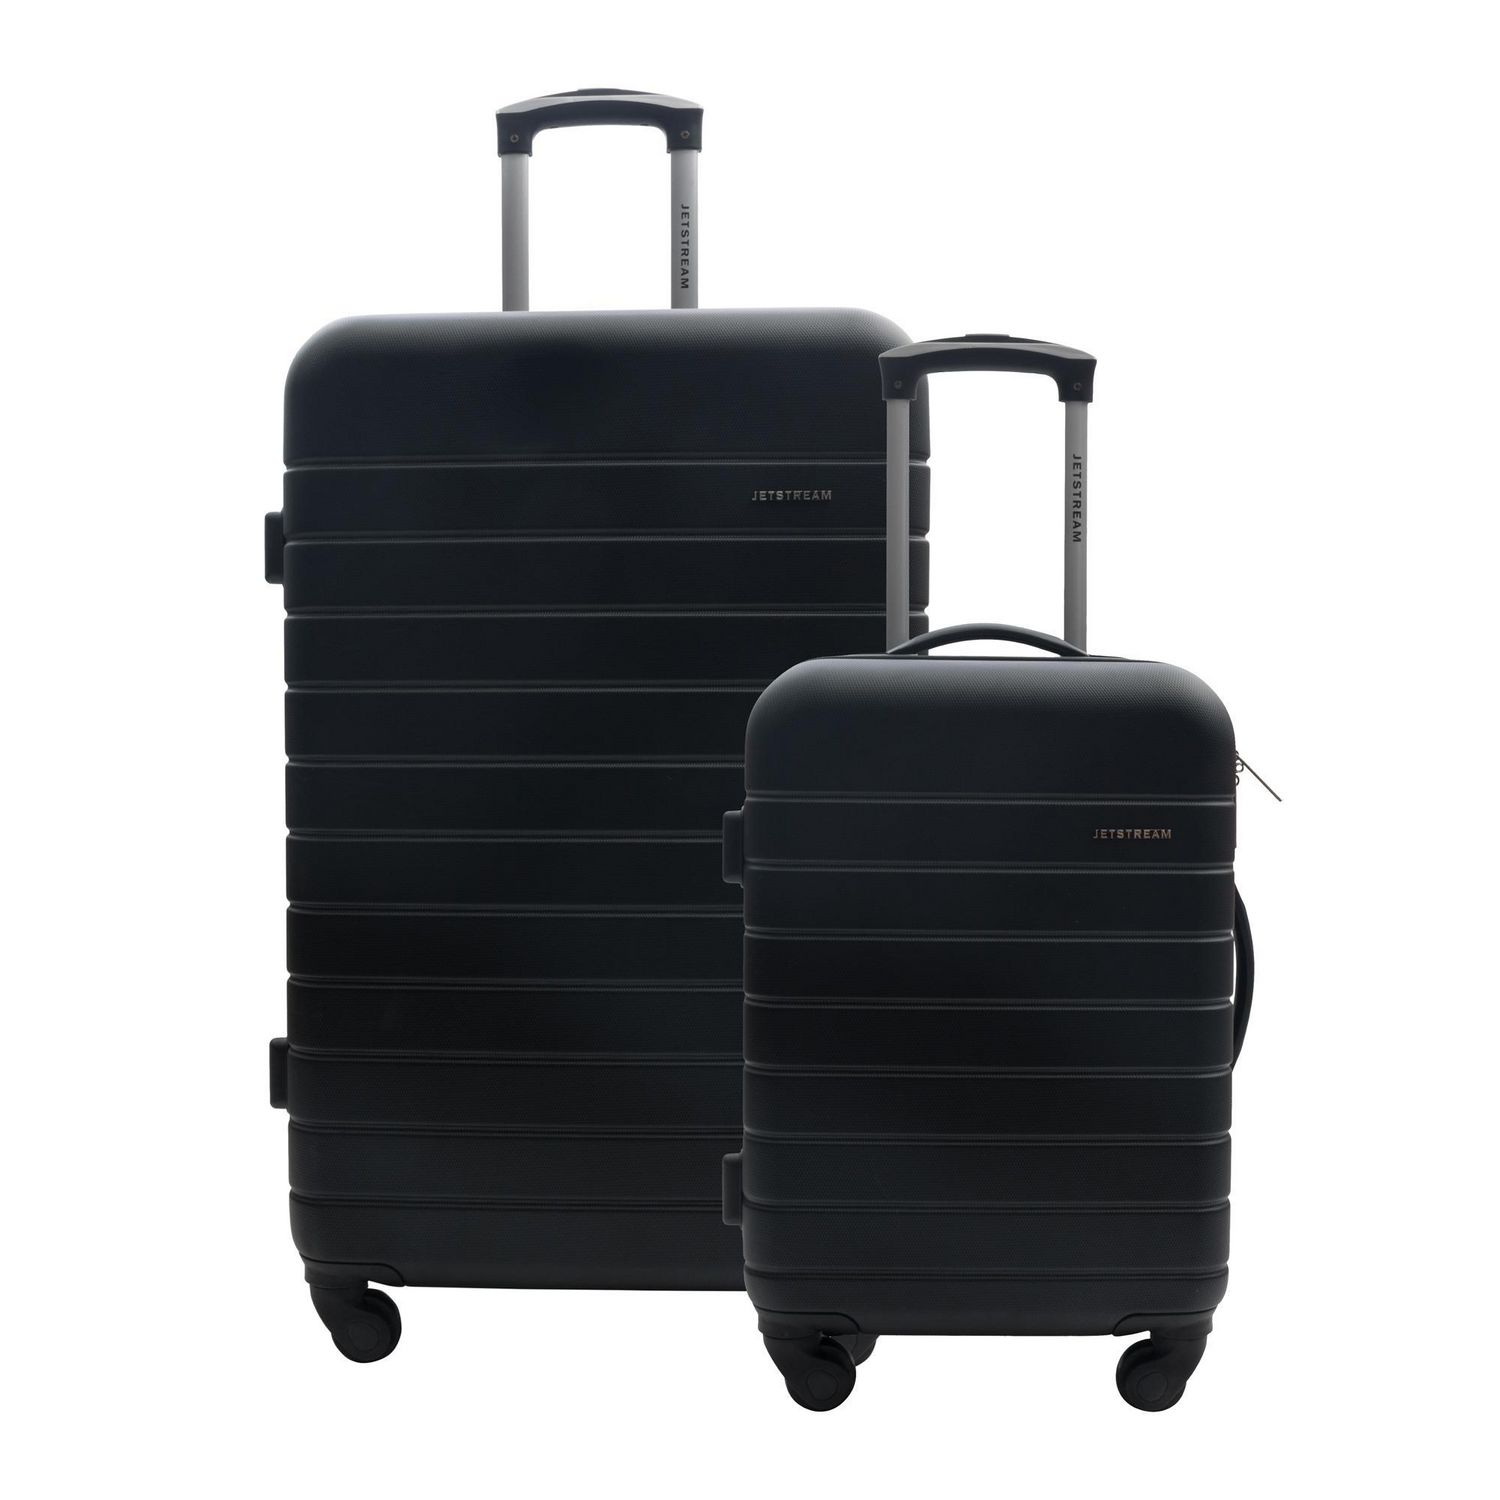 Silver Finish /& E-Book Large Hardsided Suitcase and Small Hardside Suitcase With Spinner Wheels 2-Pack Set